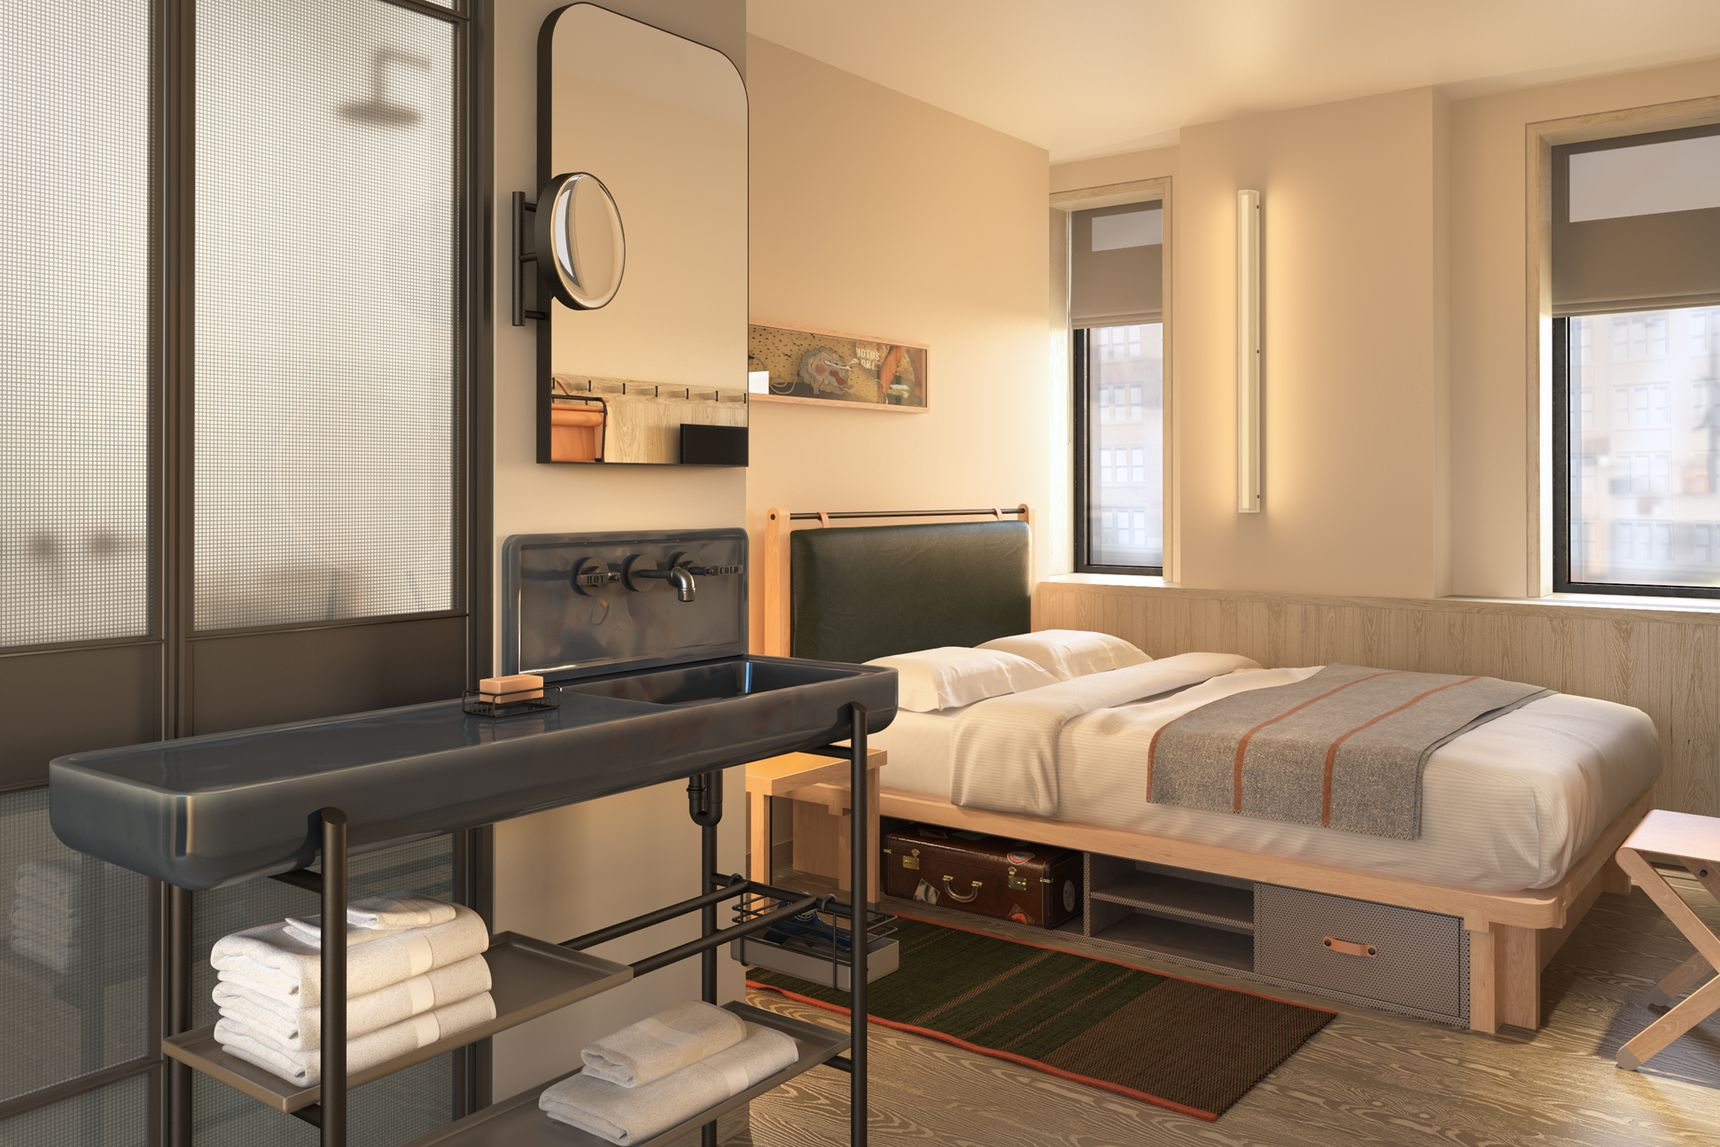 Moxy Hotel Times Square Releases Renderings of Yabu Pushelberg Designed Rooms